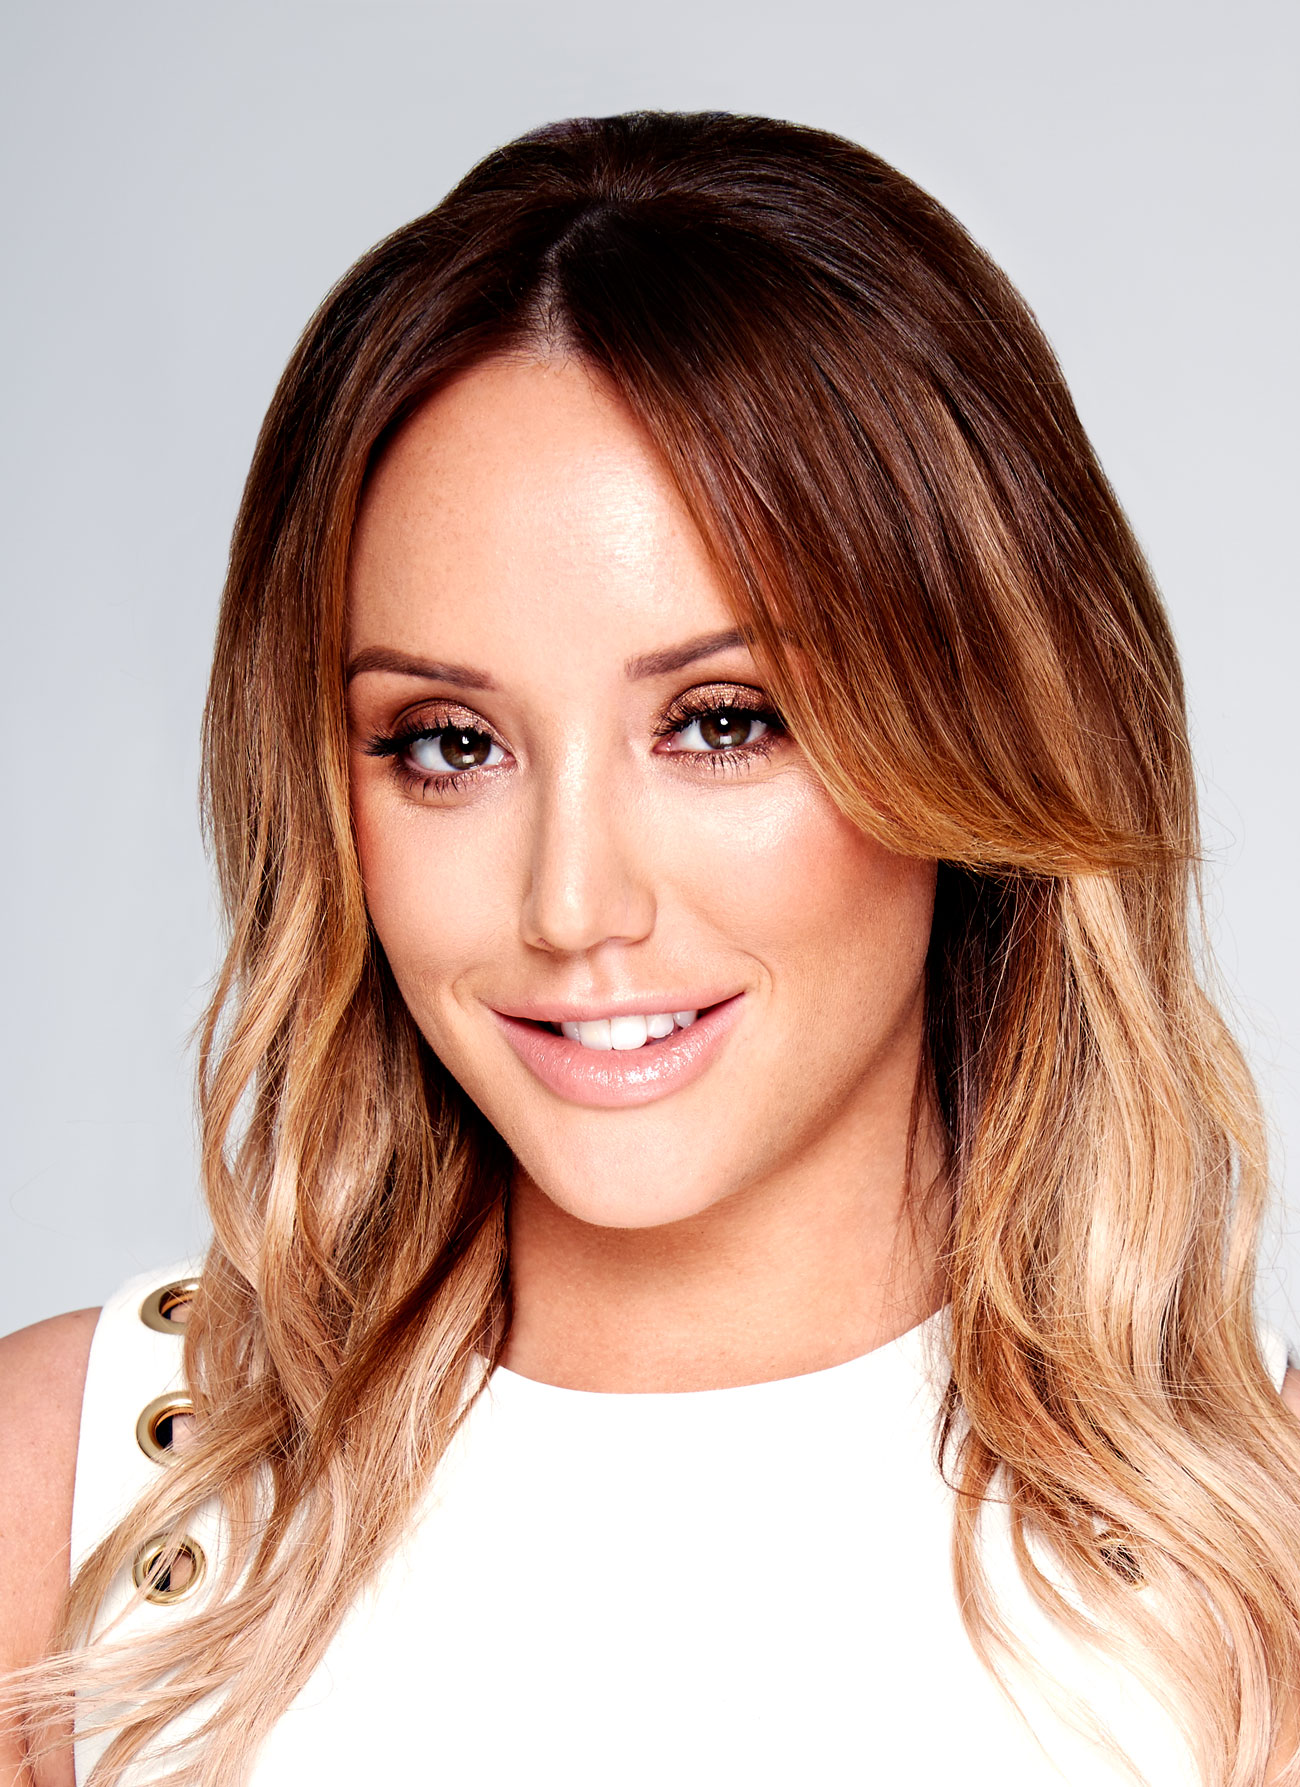 UKs Favorite Reality TV Star Charlotte Crosby Unveils Her